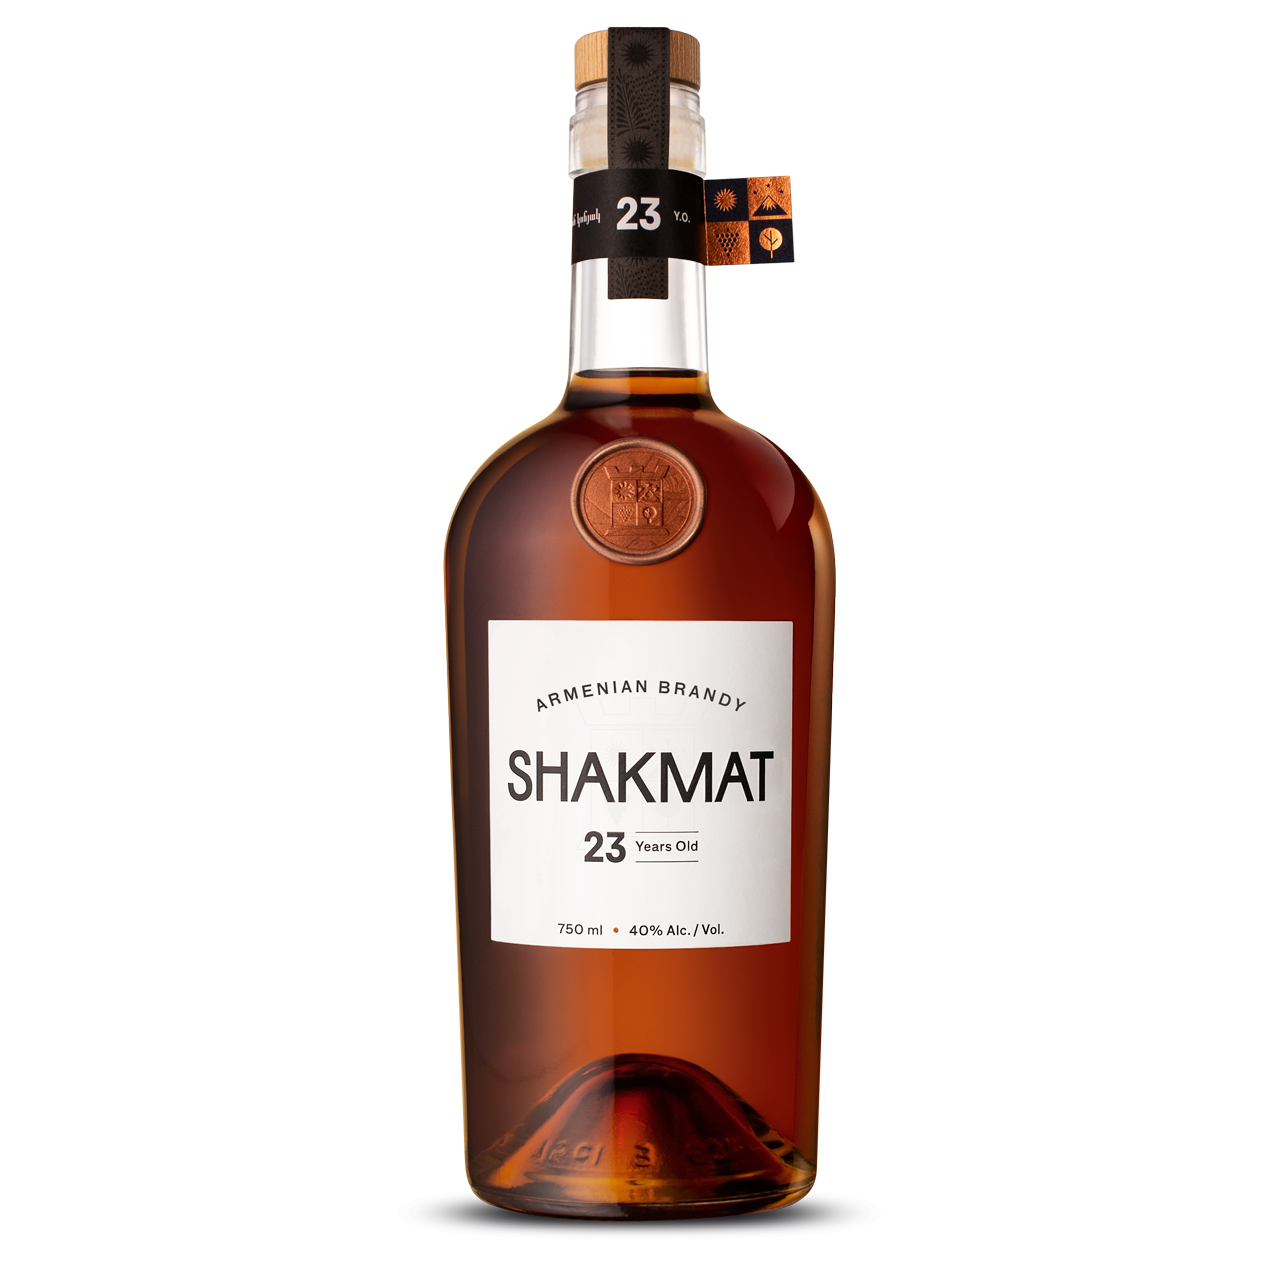 Shakmat Armenian Brandy 23 Years Old